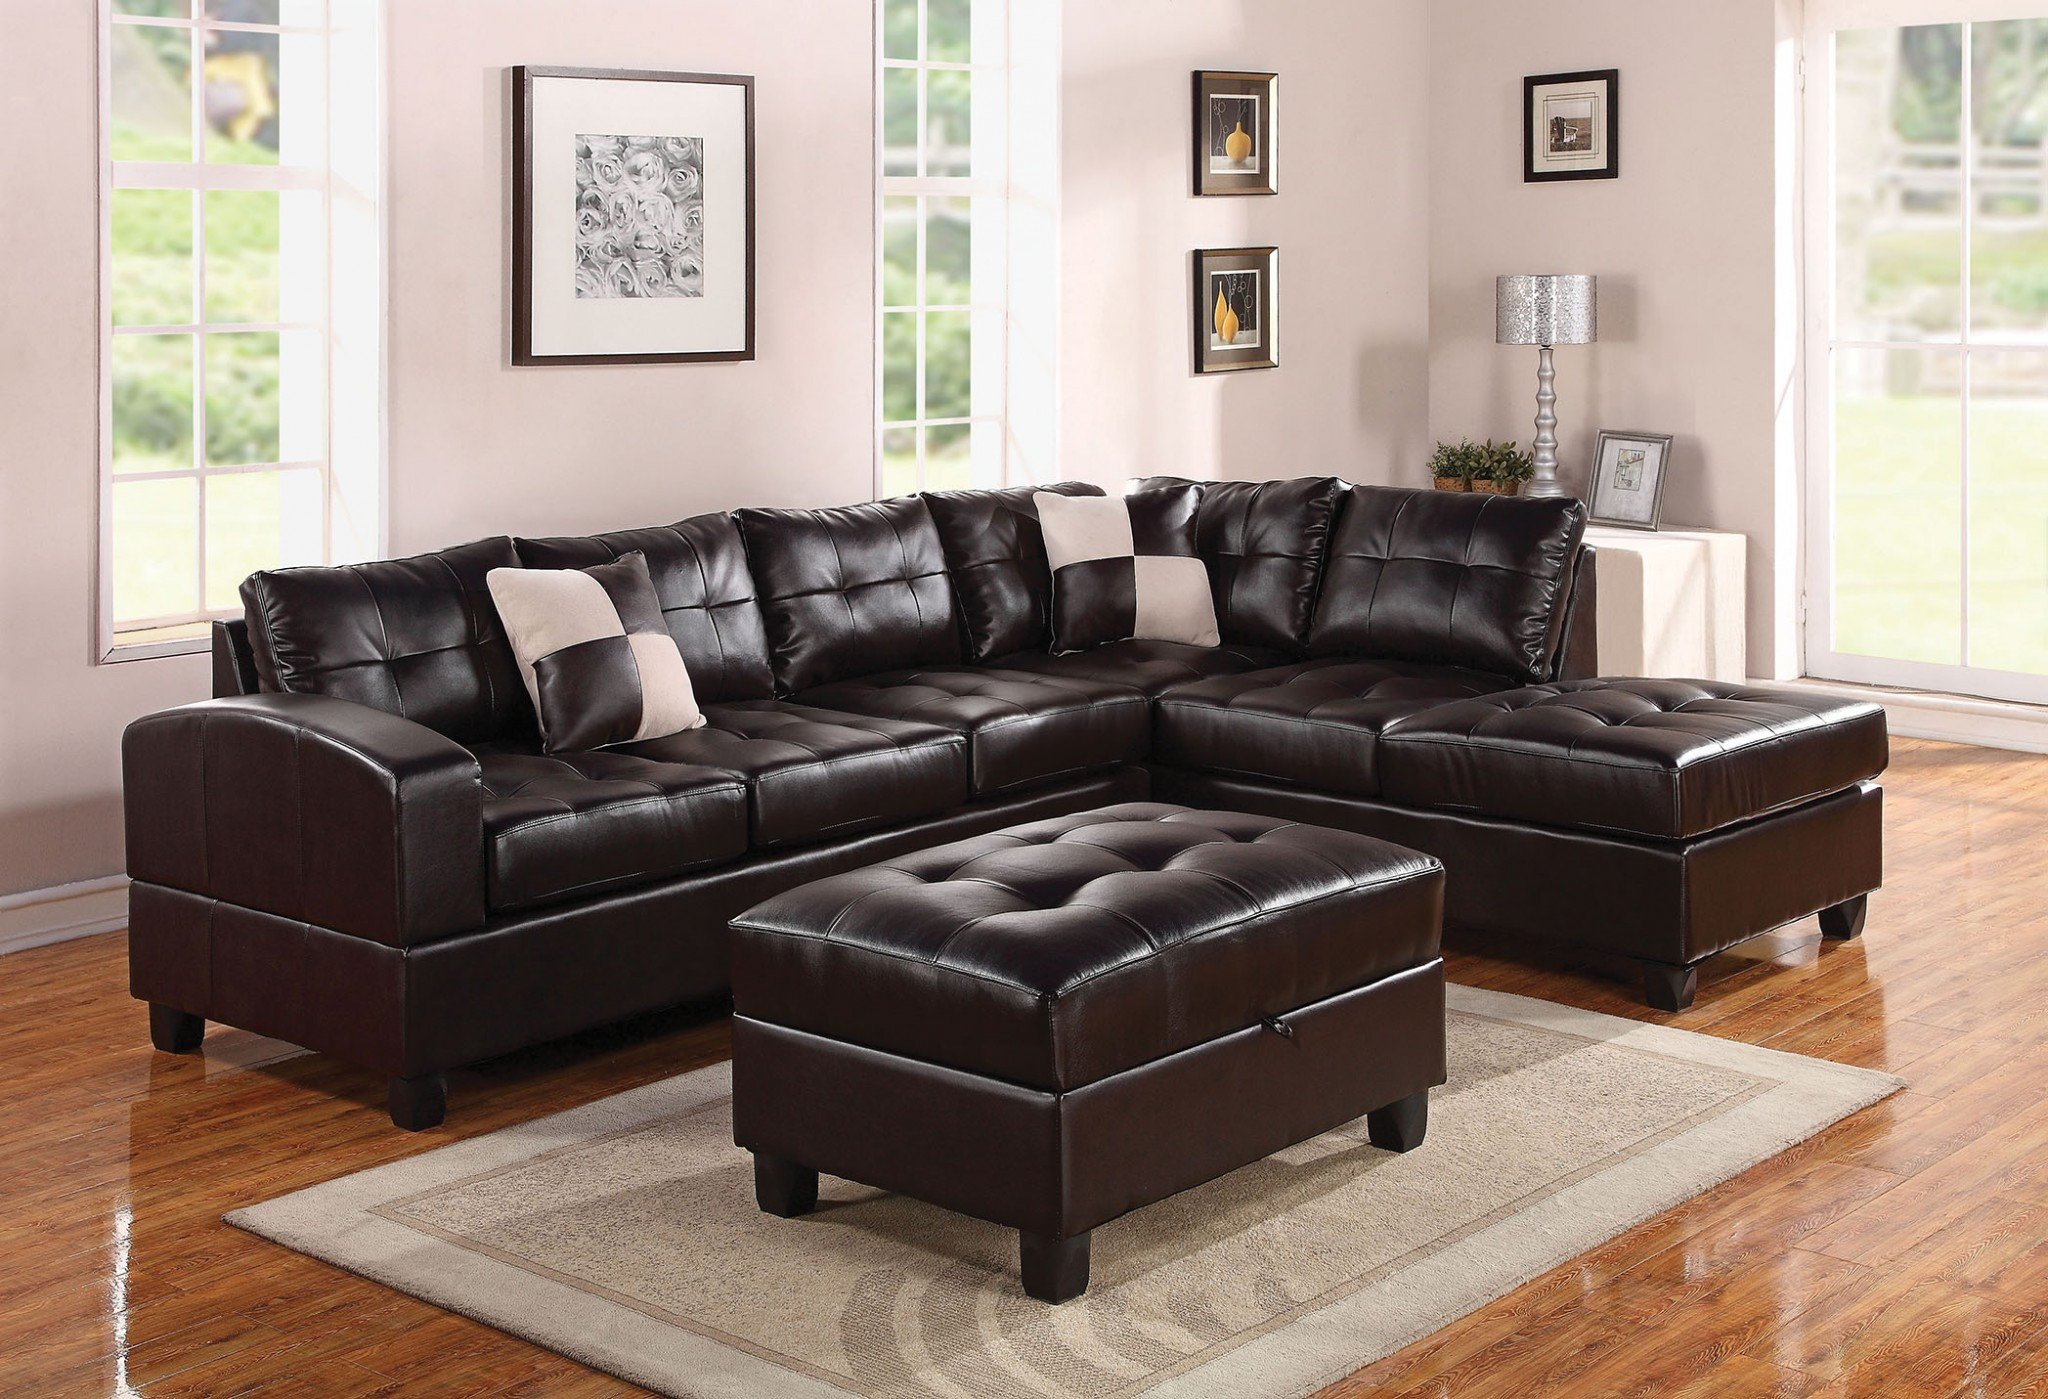 "111"" X 78"" X 34"" Black Bonded Leather Reversible Sectional Sofa With 2 Pillows"